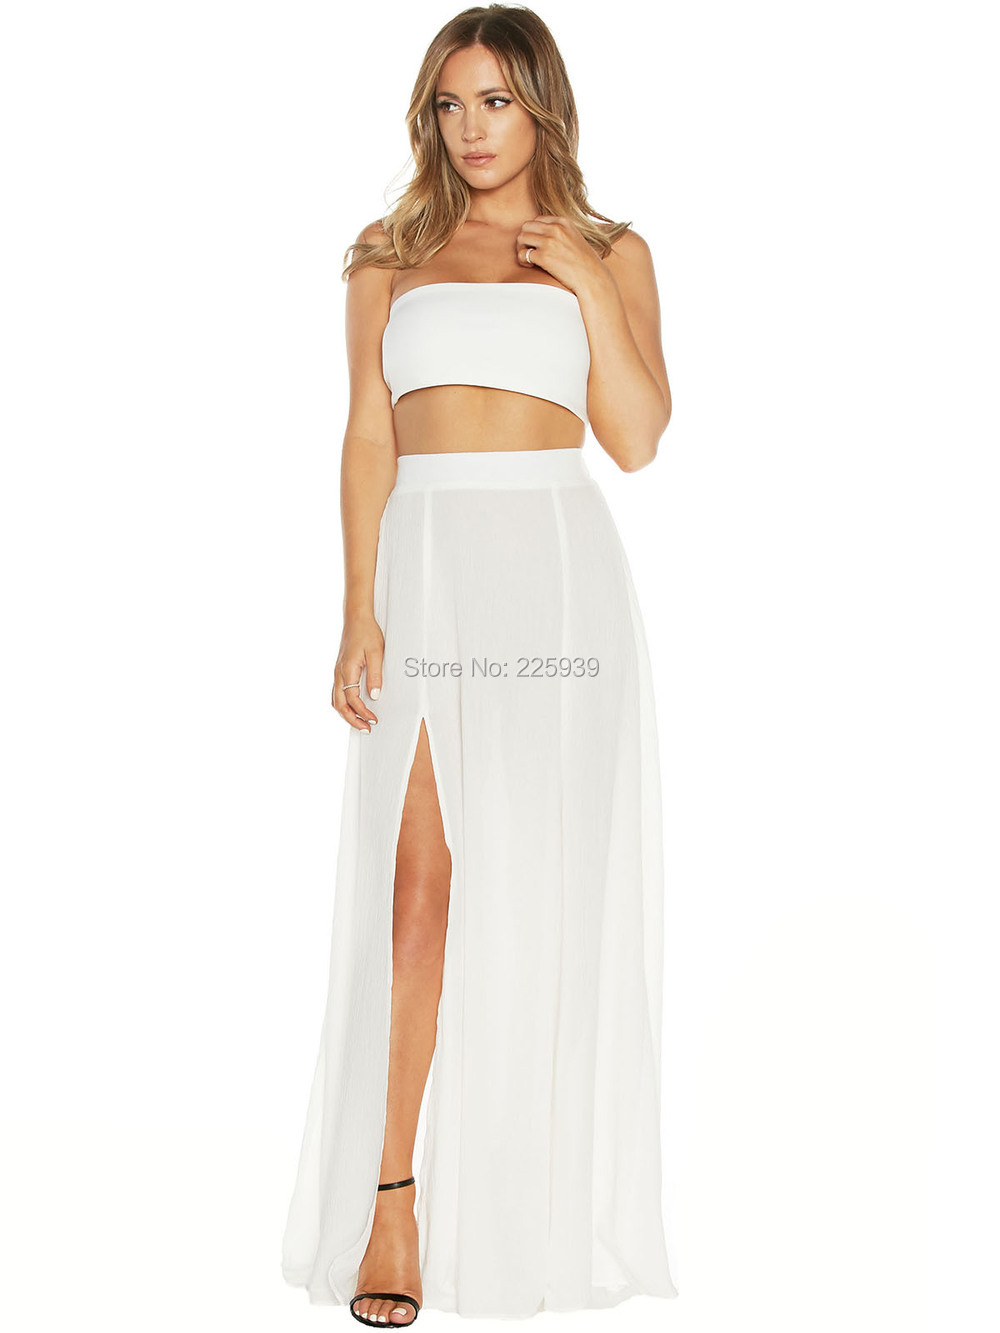 daefa9a8fce New Arrival Strapless Full Length A Line High Slit 2 Piece Long Two Piece  White Crop Top Prom Dresses Simple Fashion Gowns